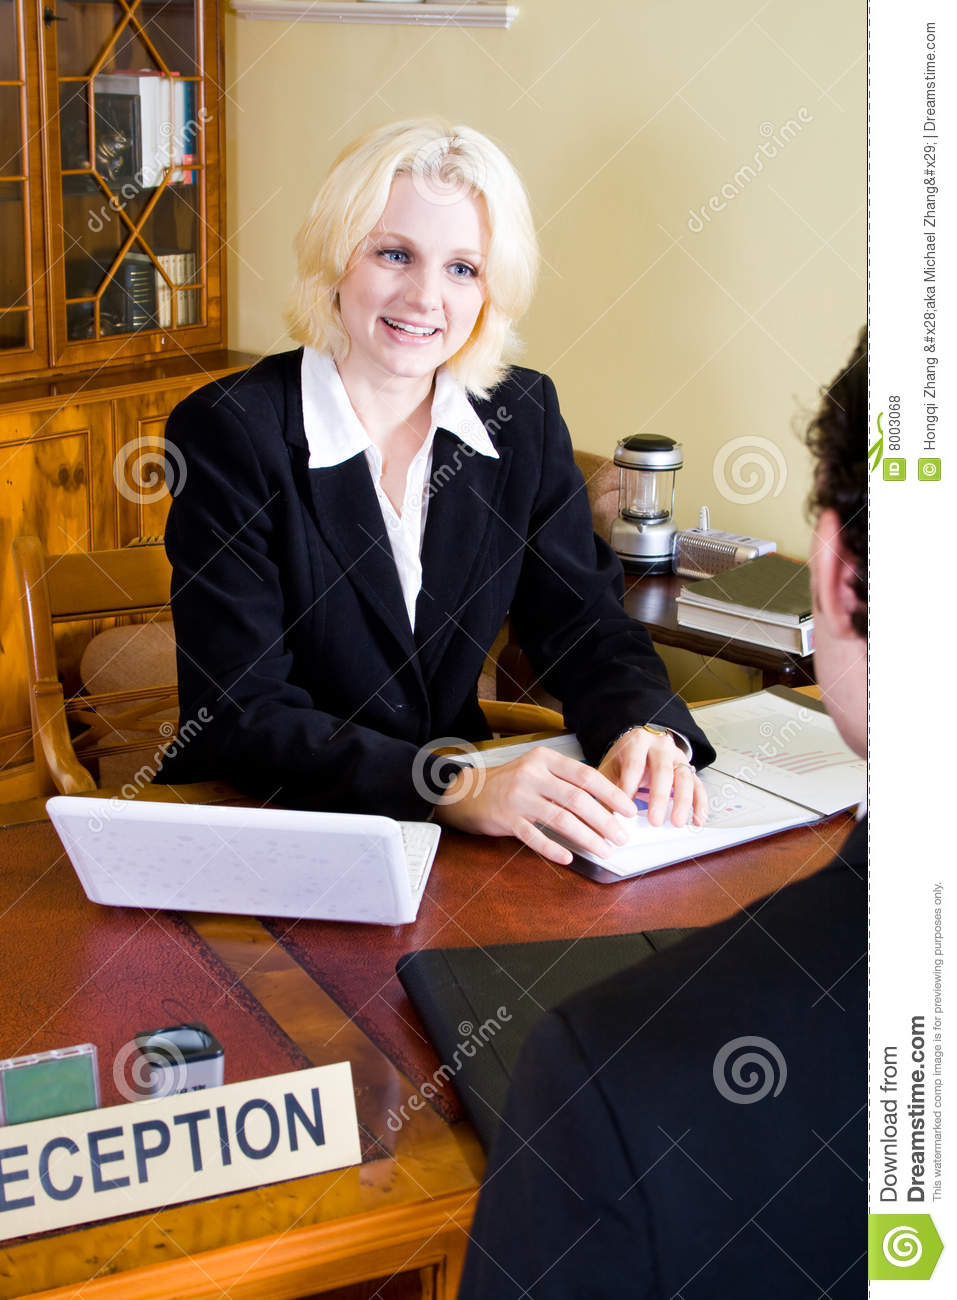 Hotel Receptionist Stock Photo Image Of Happy Hair Male